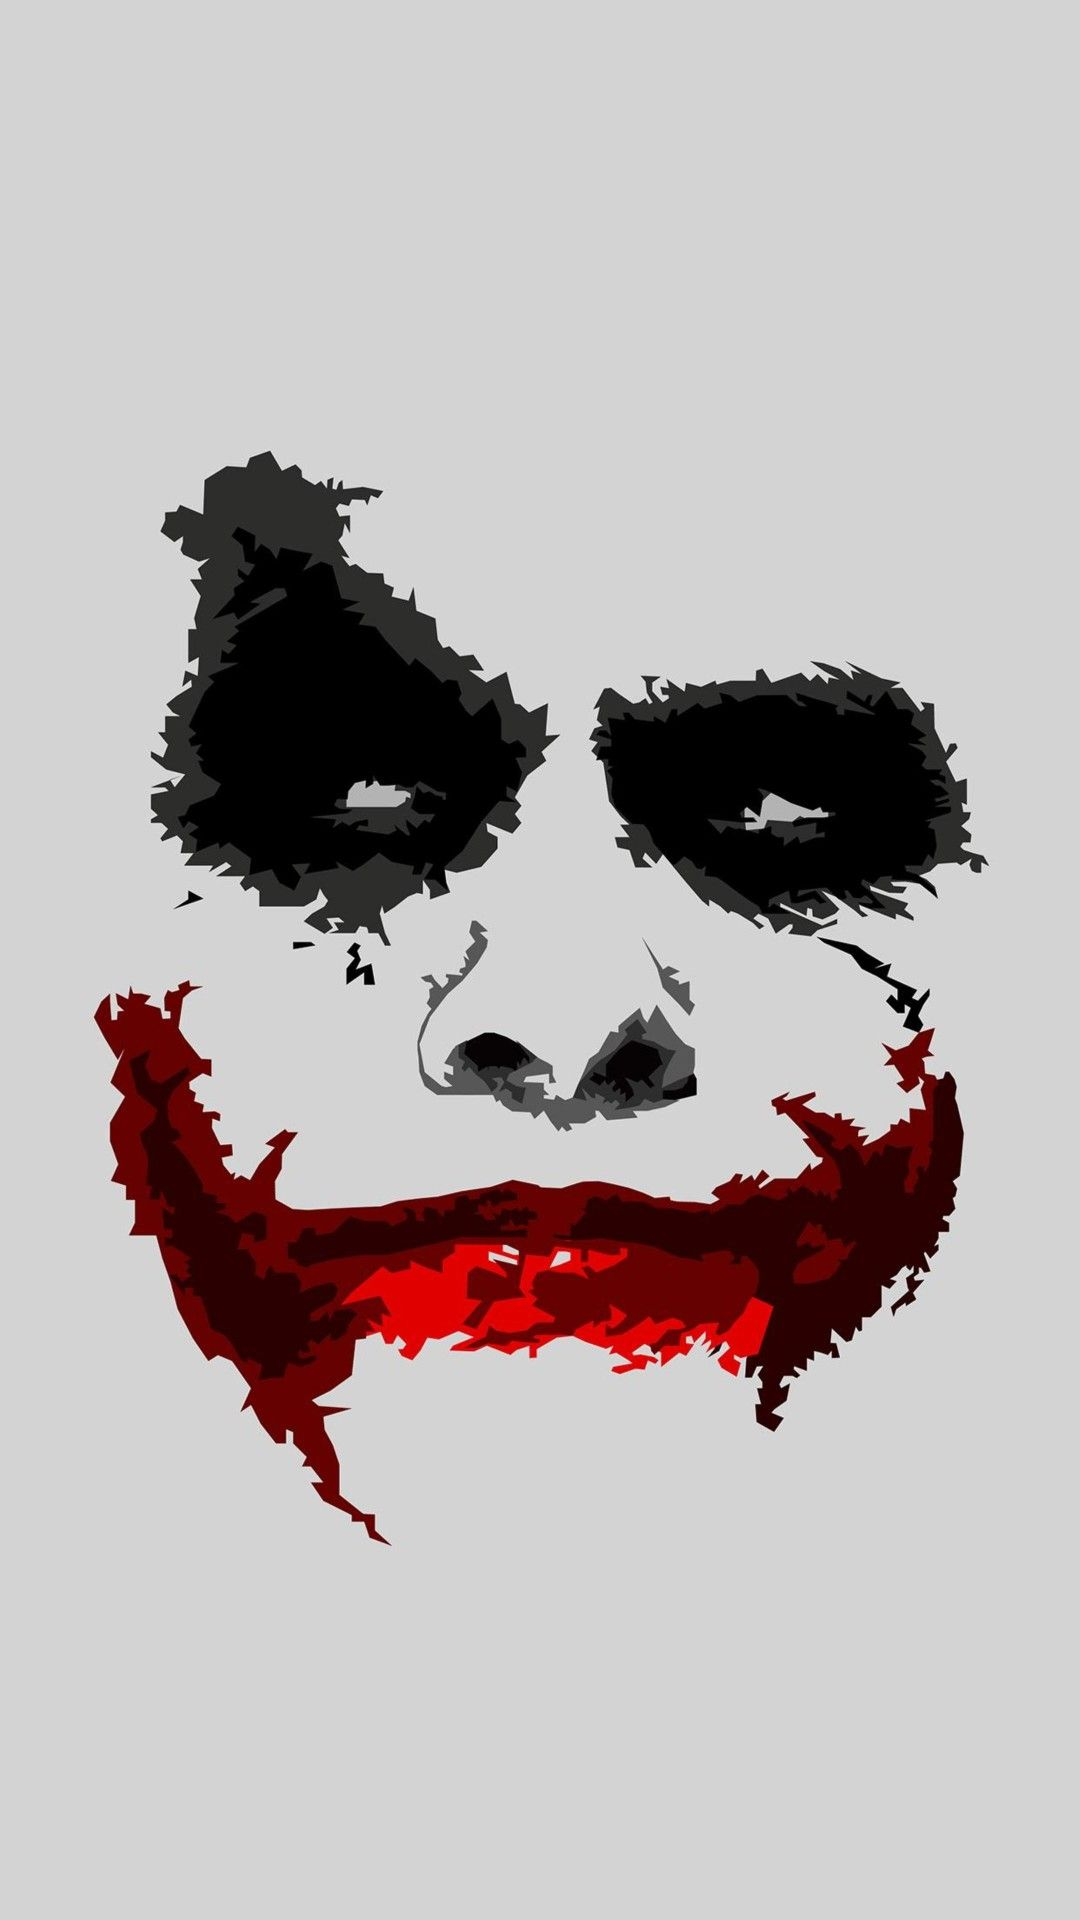 Hd wallpaper handy joker